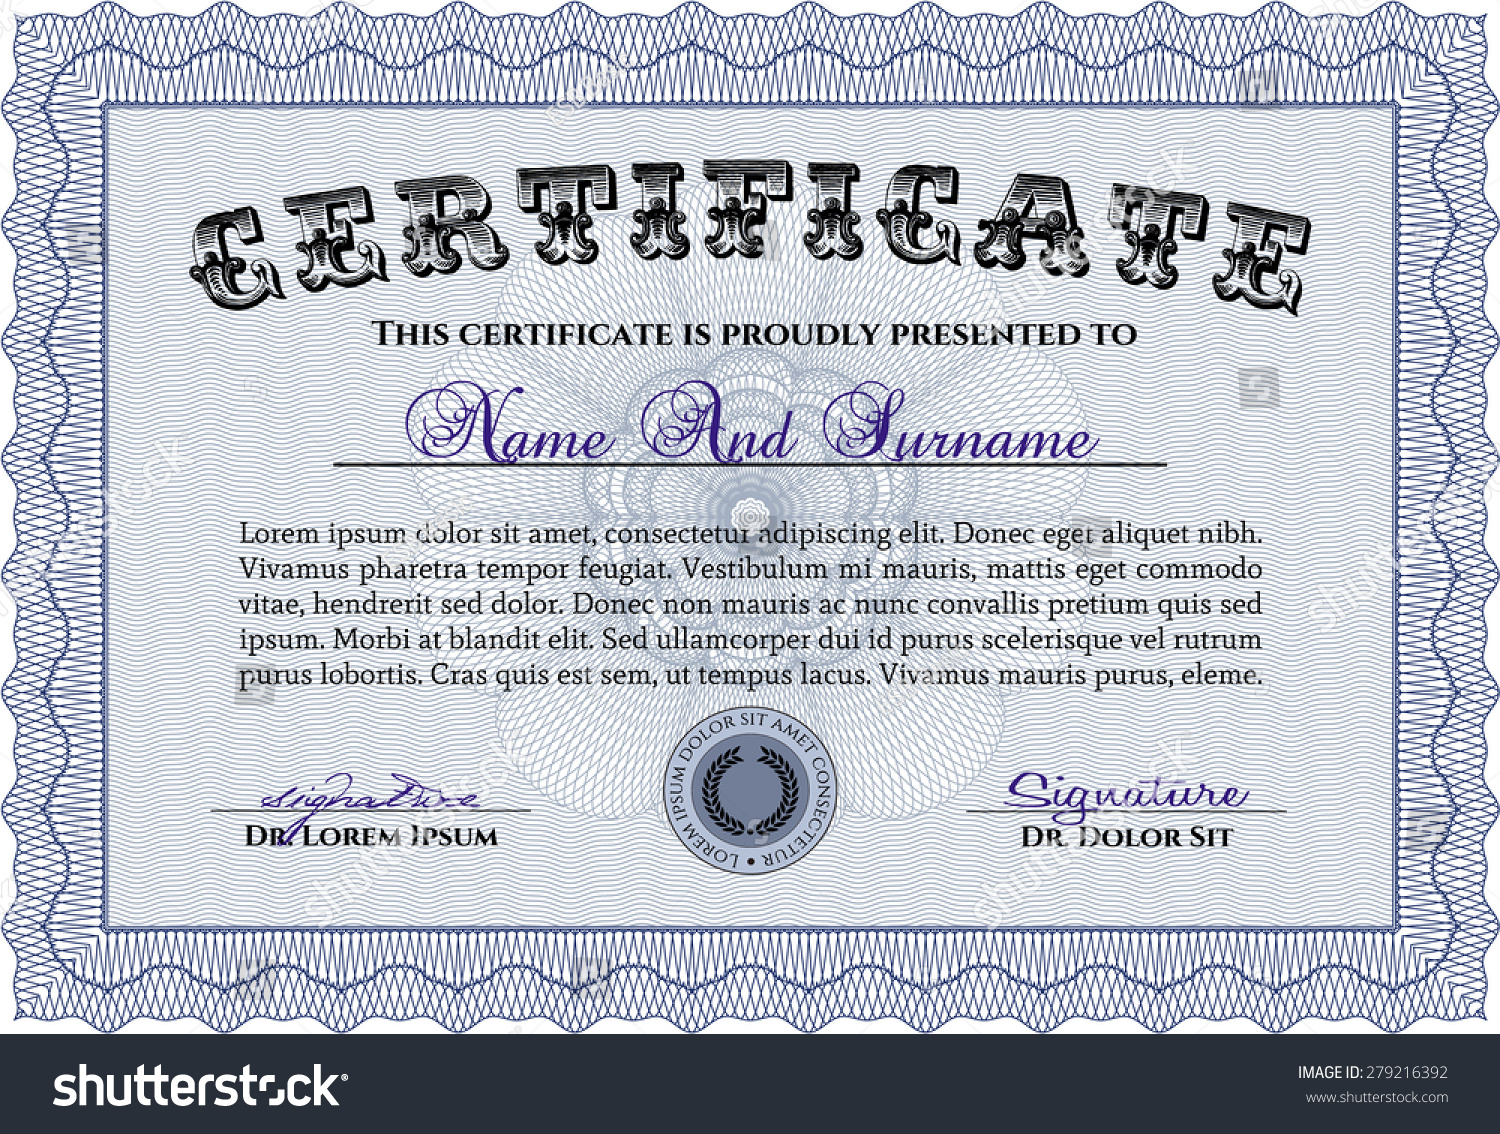 Certificate template diploma template customizable easy stock certificate template diploma template customizable easy stock vector 279216392 shutterstock yelopaper Images